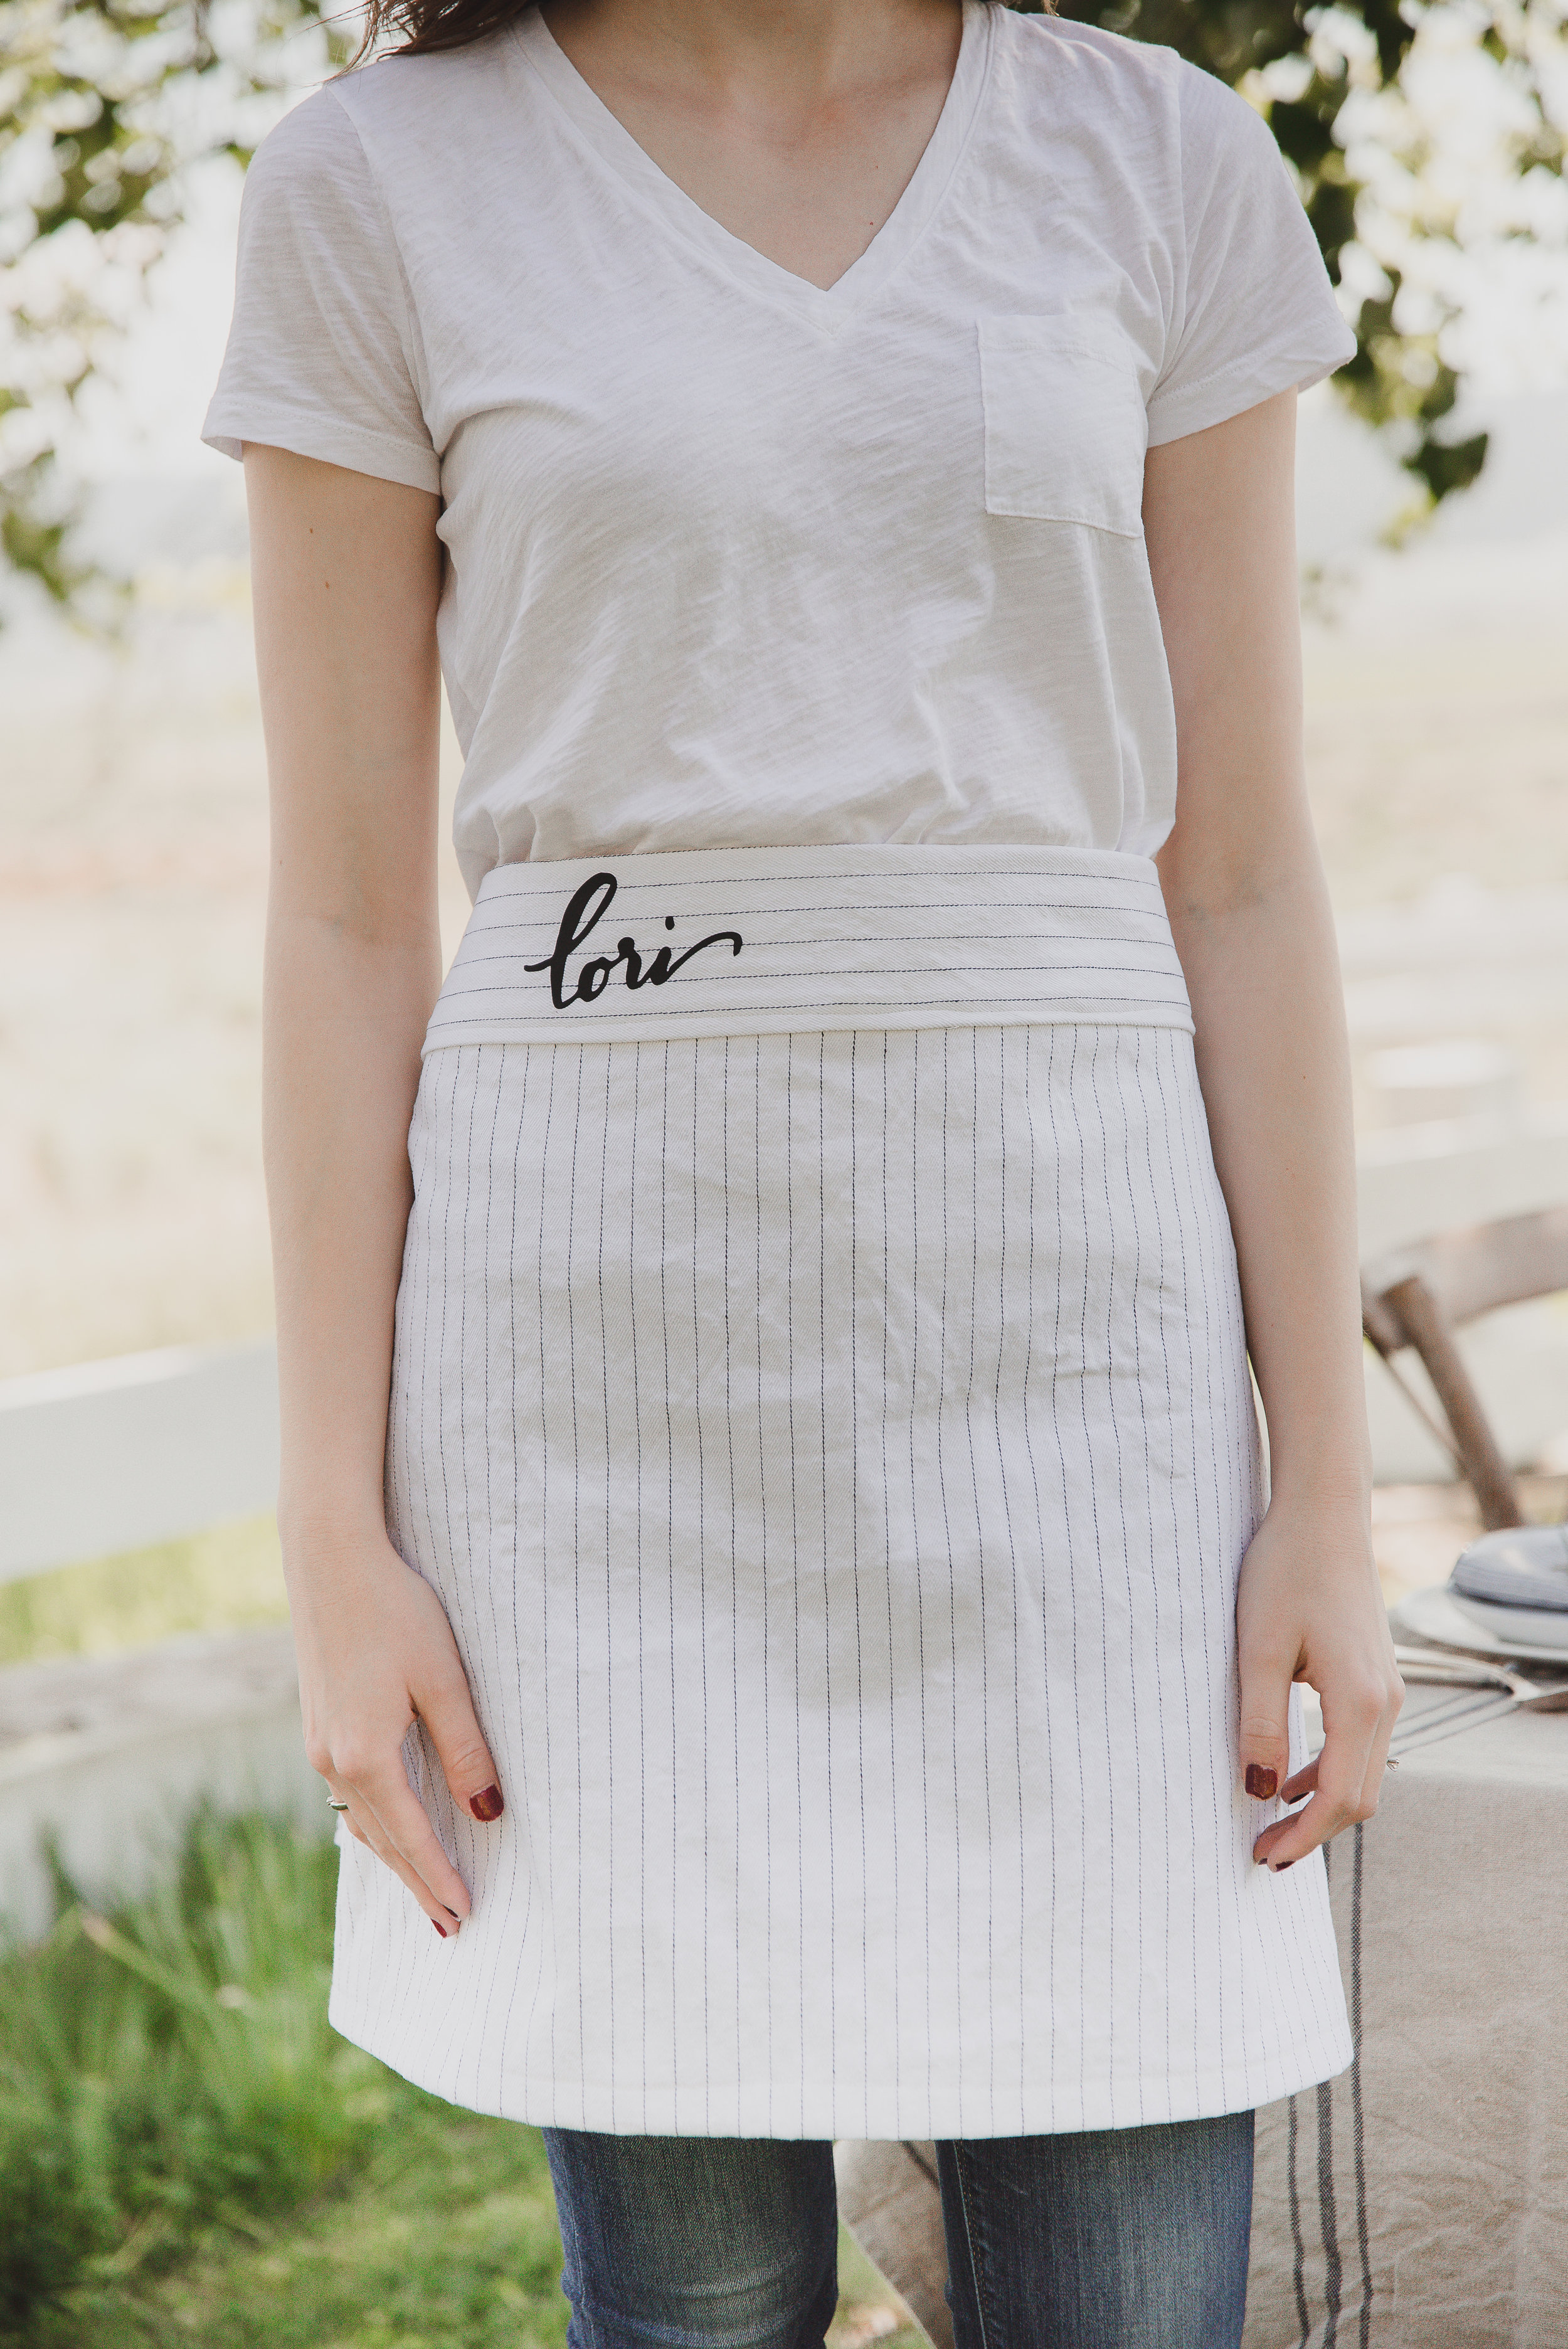 Make this easy half apron with this free apron pattern guide (with video!) - this is a great start into sewing for beginners! Striped farmhouse half apron with monogram. #sewingpatterns #freepatterns #halfapron #sewingproject